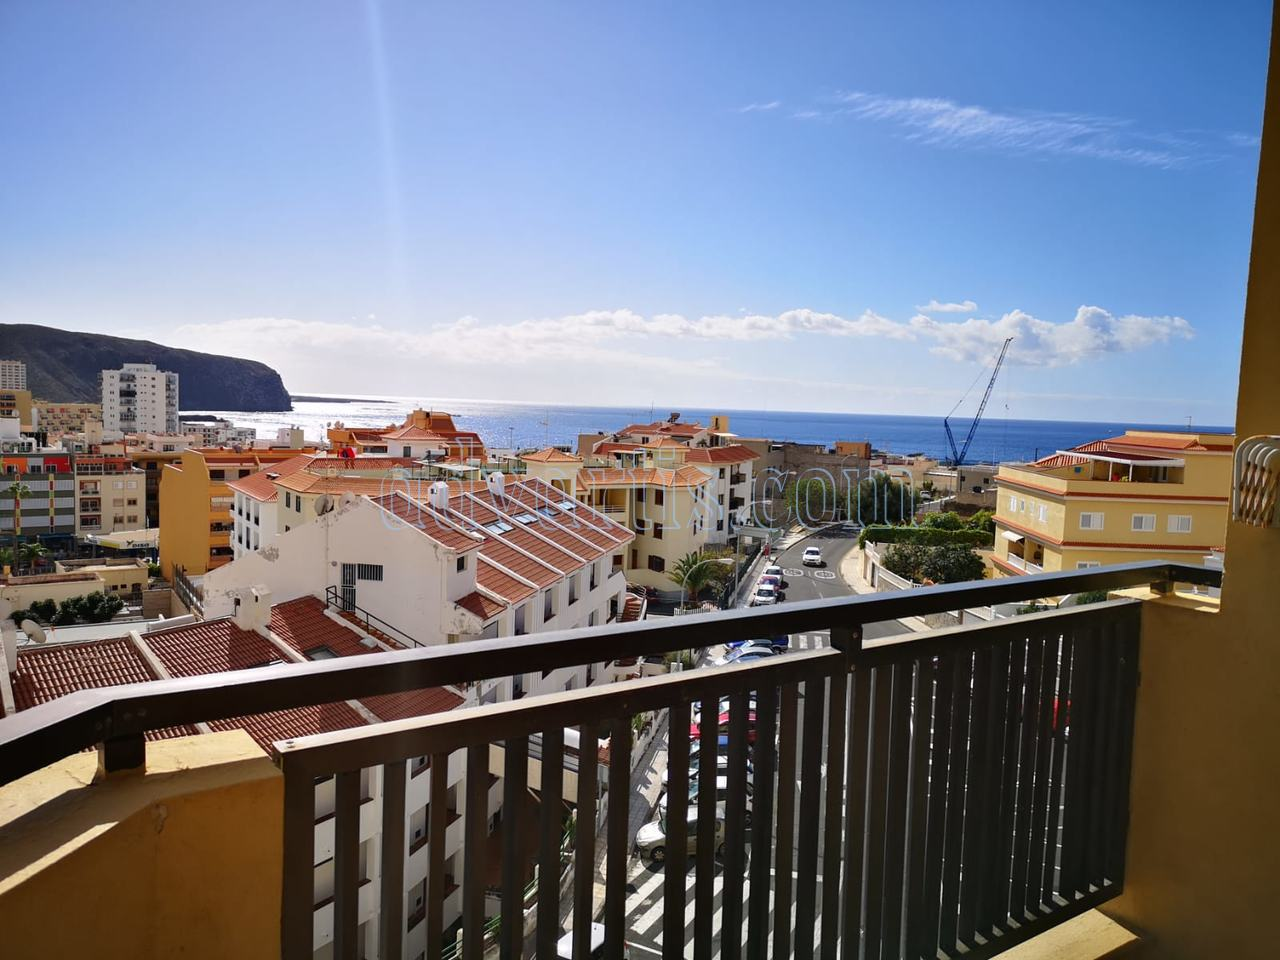 2 bedroom apartment for sale in Los Cristianos, Tenerife €165.000